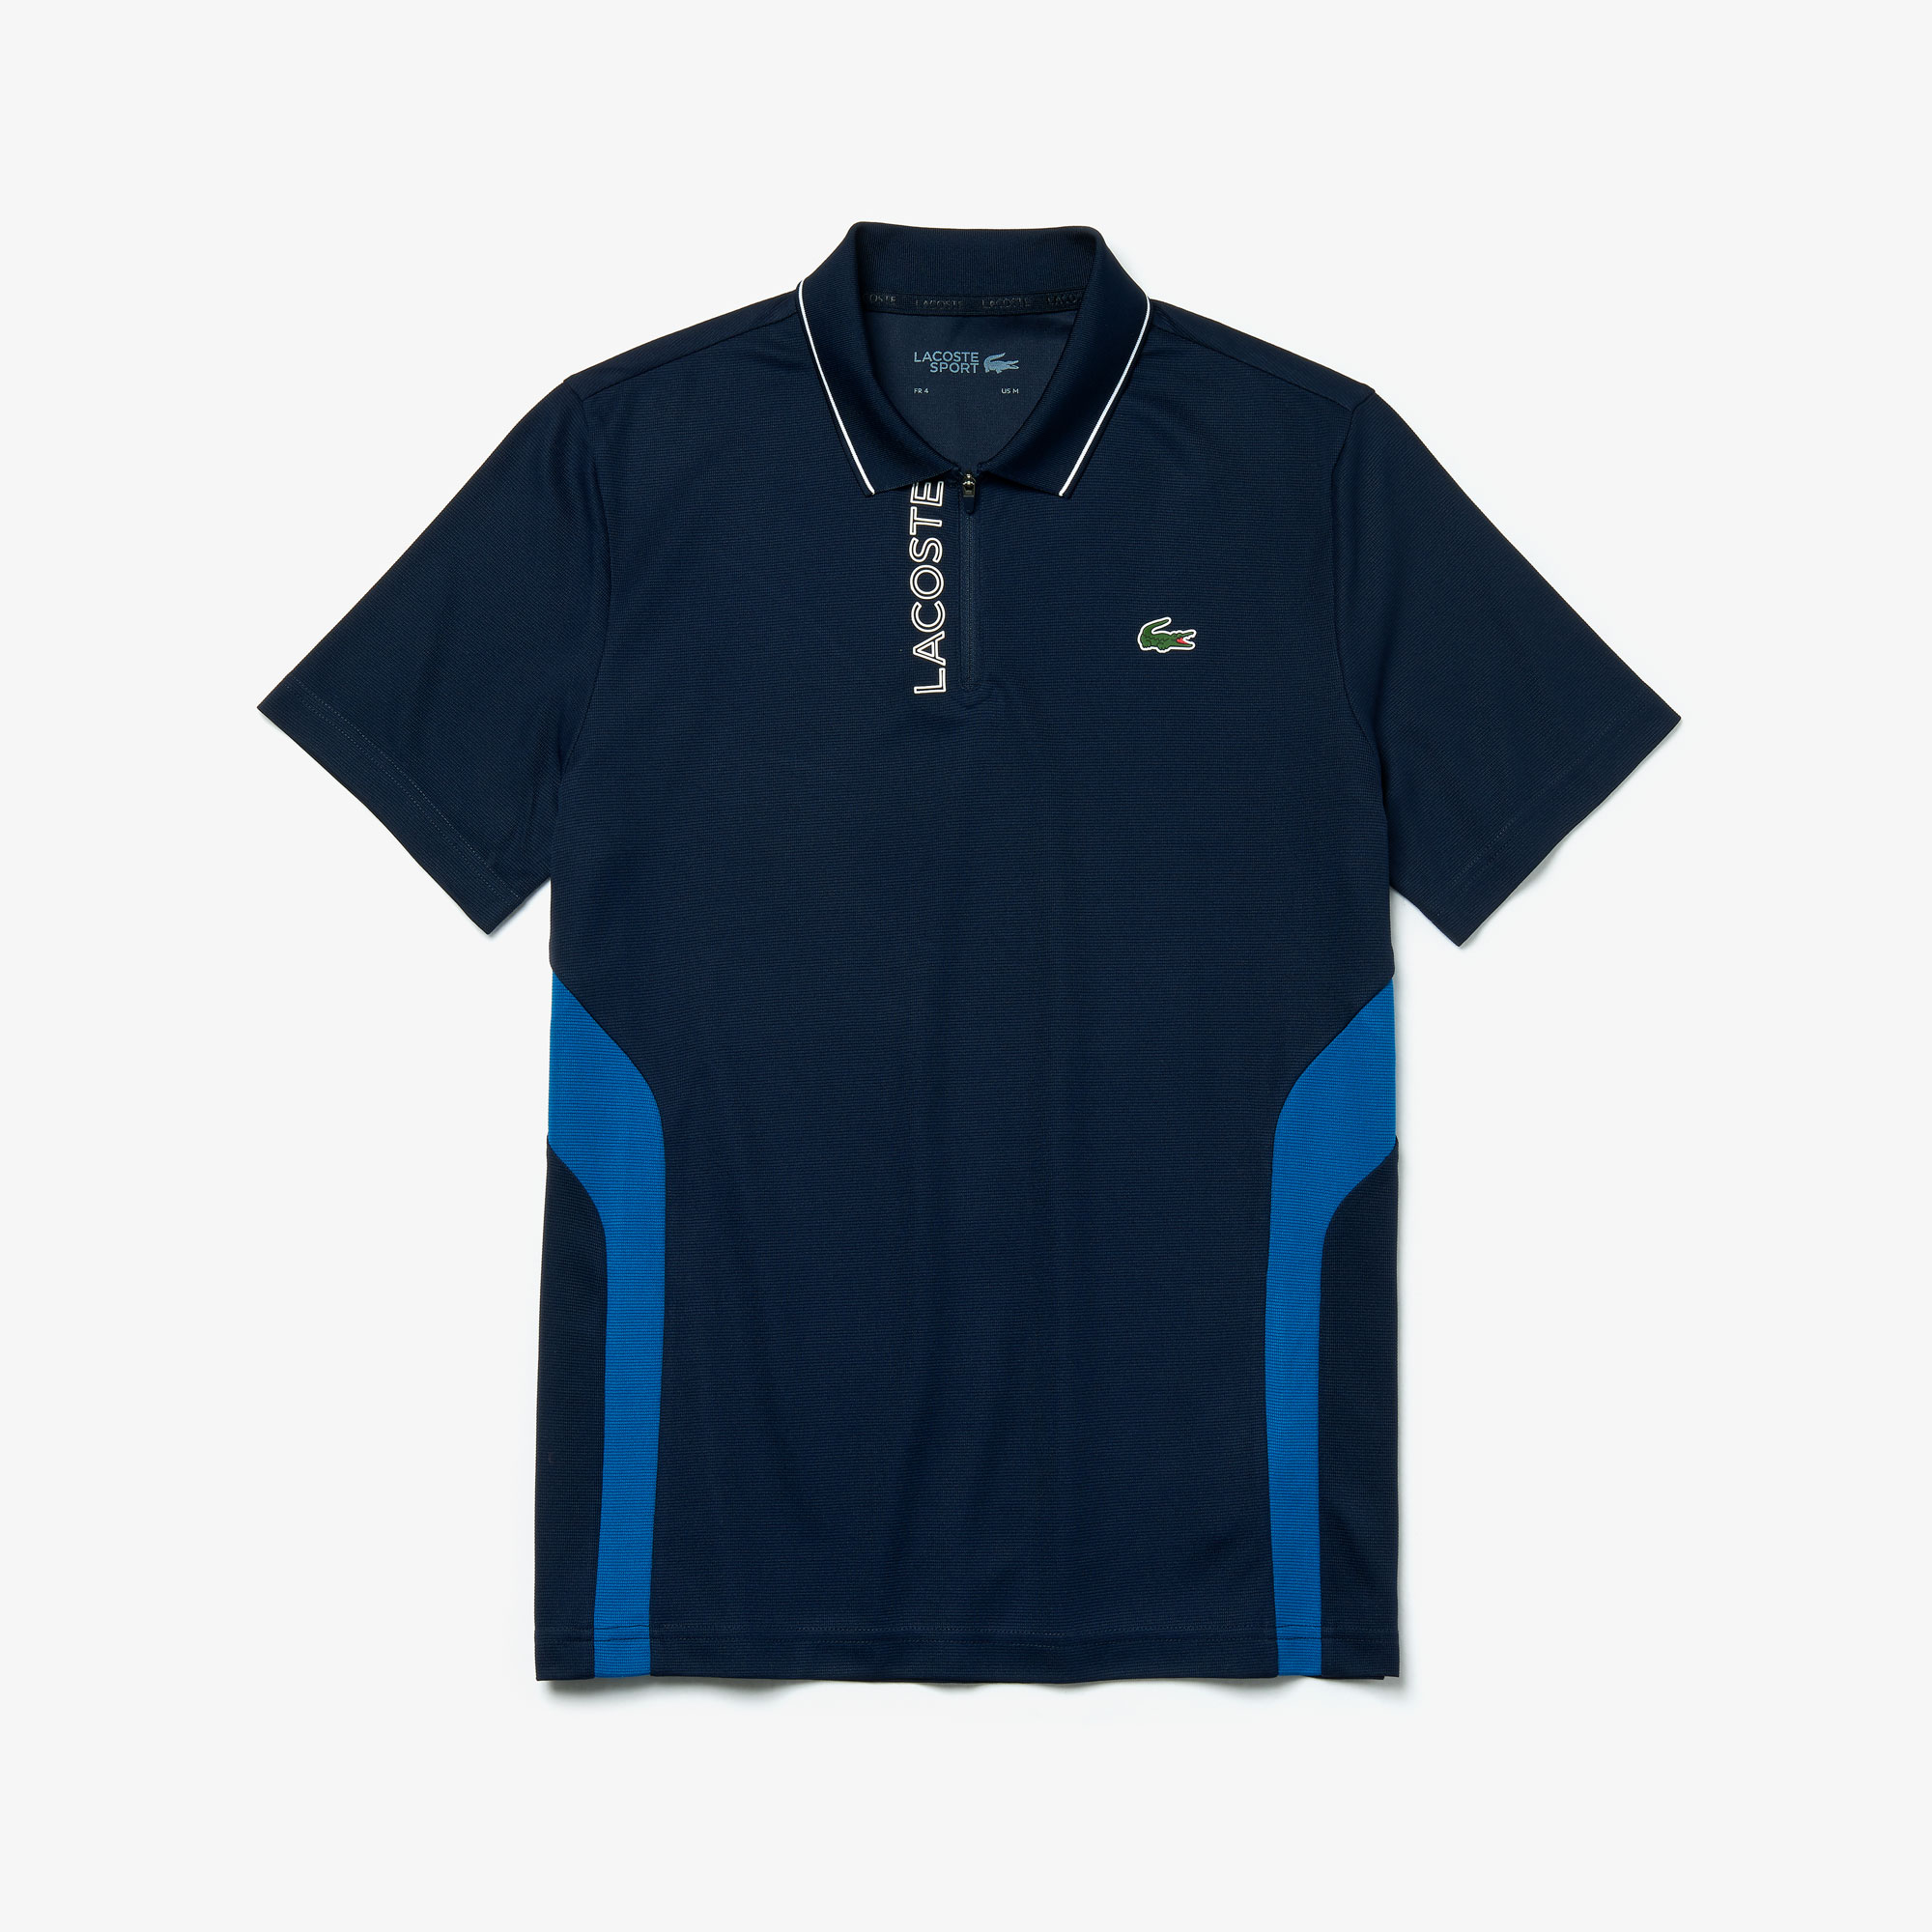 Men's Lacoste SPORT Two-Tone Breathable Knit Zippered Golf Polo Shirt